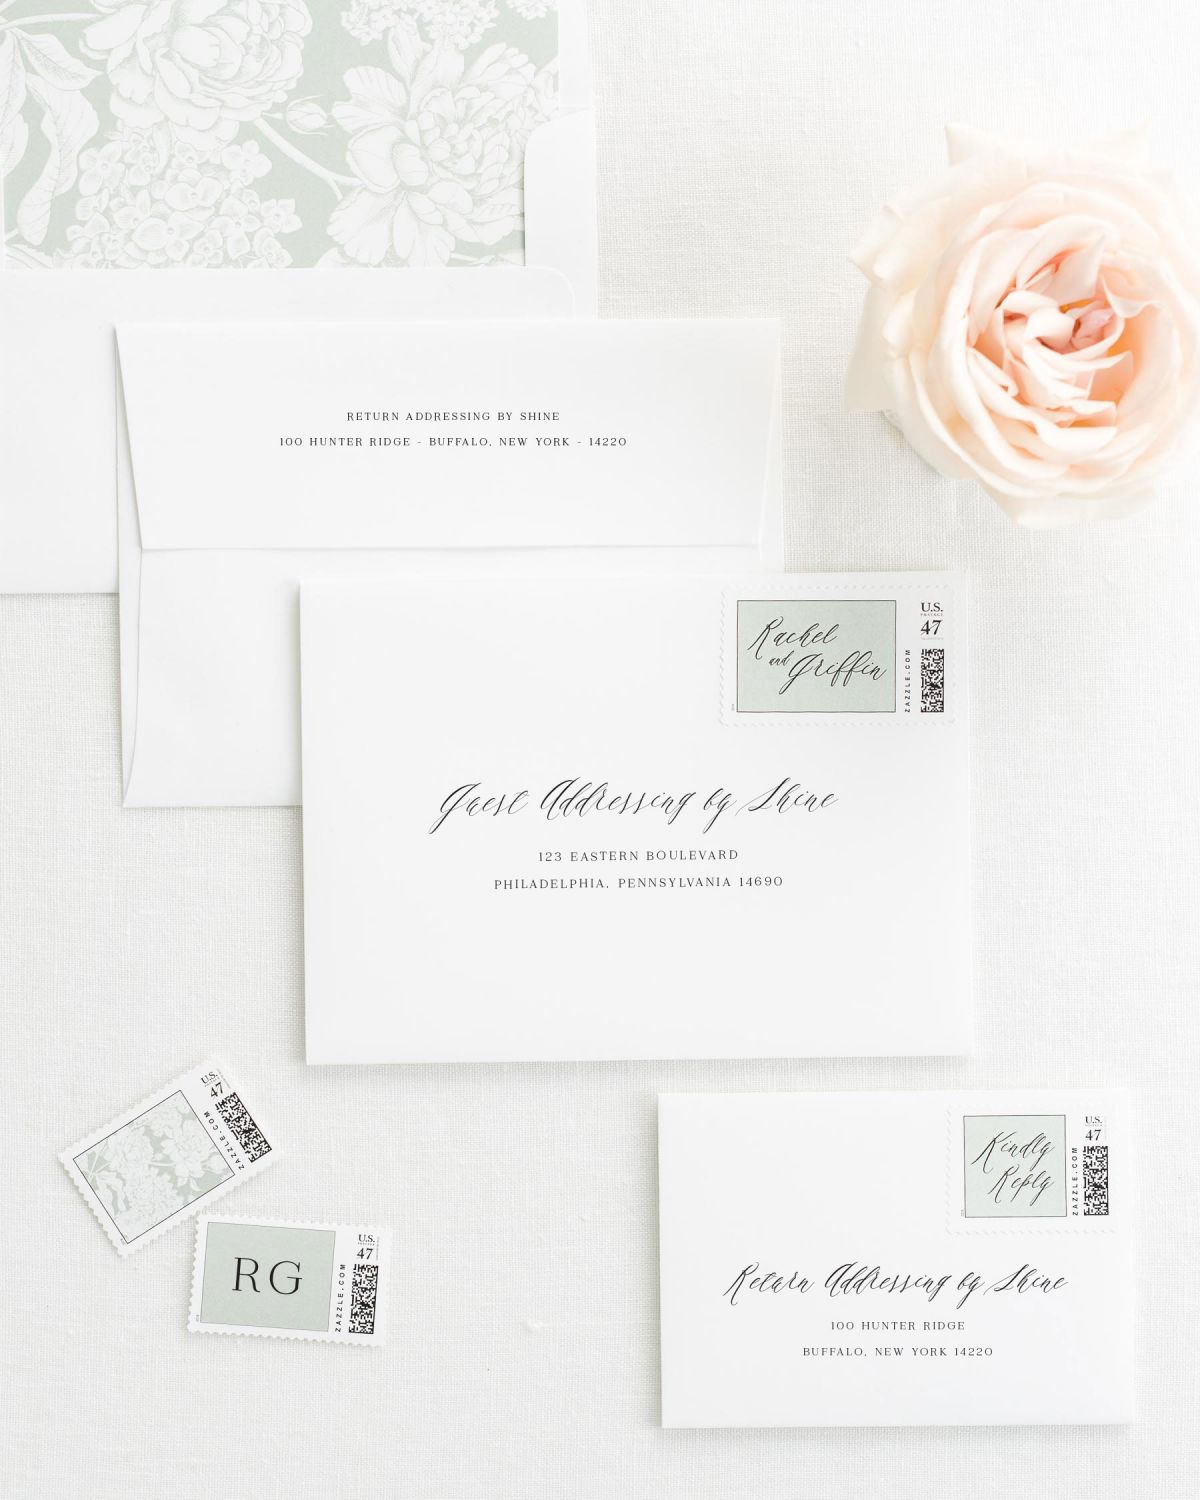 Wedding Invitation Envelopes with Pre-Printed Addresses and Matching Sea Salt Personalized Stamps